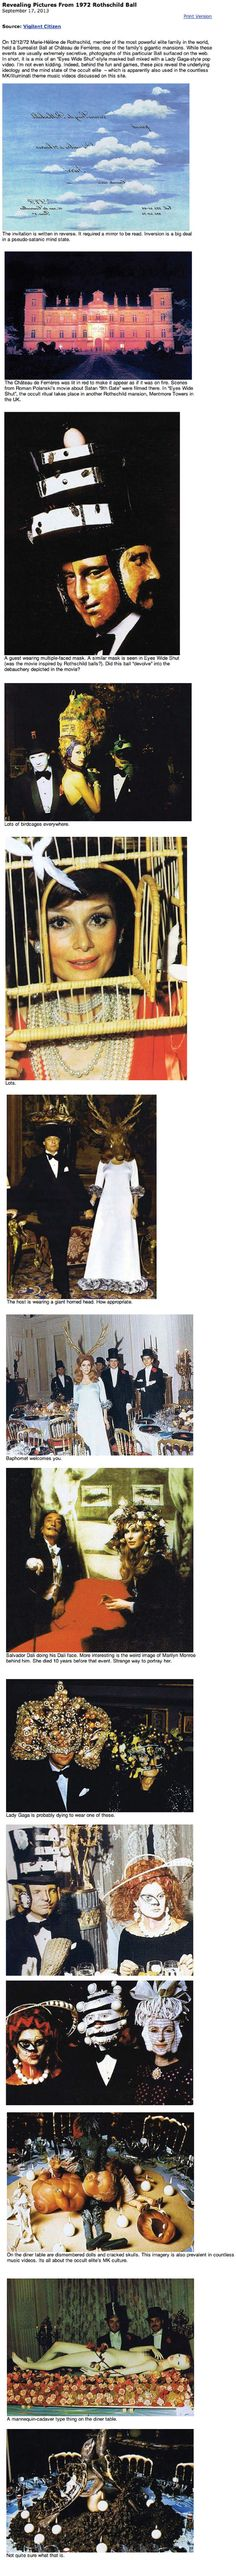 "1972 Rothschild party. Incredible amount of symbolism. These are the satanic Elite. MKUltra (birdcages), cannibalism & sacrifice symbolism (dolls/mannequins), eyes (Aliester Crowley called his god Satan ""the Eye""...yes, the same eye on the back of the dollar bill), reptilian, Baphomet imagery. If this was 40 years ago just think how much sicker they are now. This was portrayed in the movie Eyes Wide Shut and director Stanley Kubrick was murdered for exposing it."